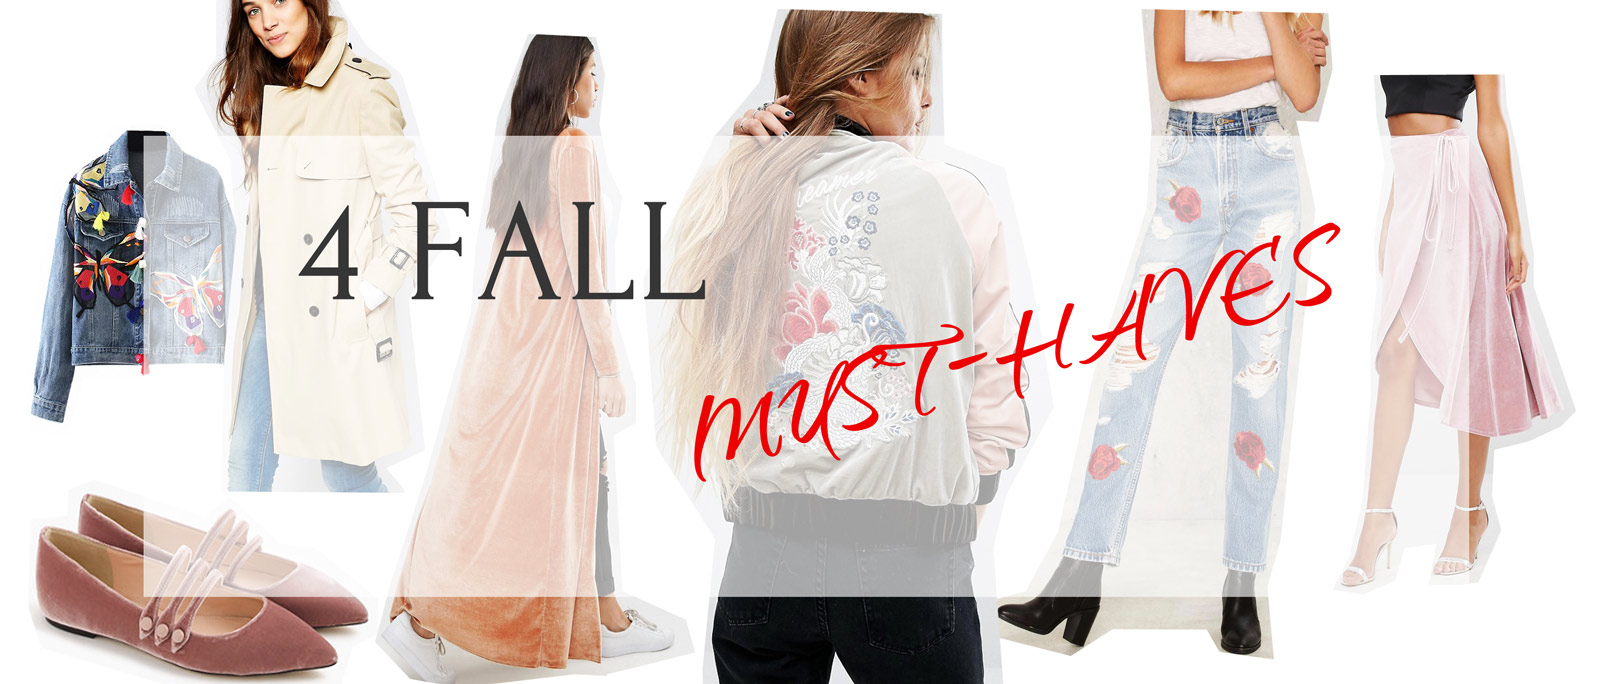 fall must-haves to buy,